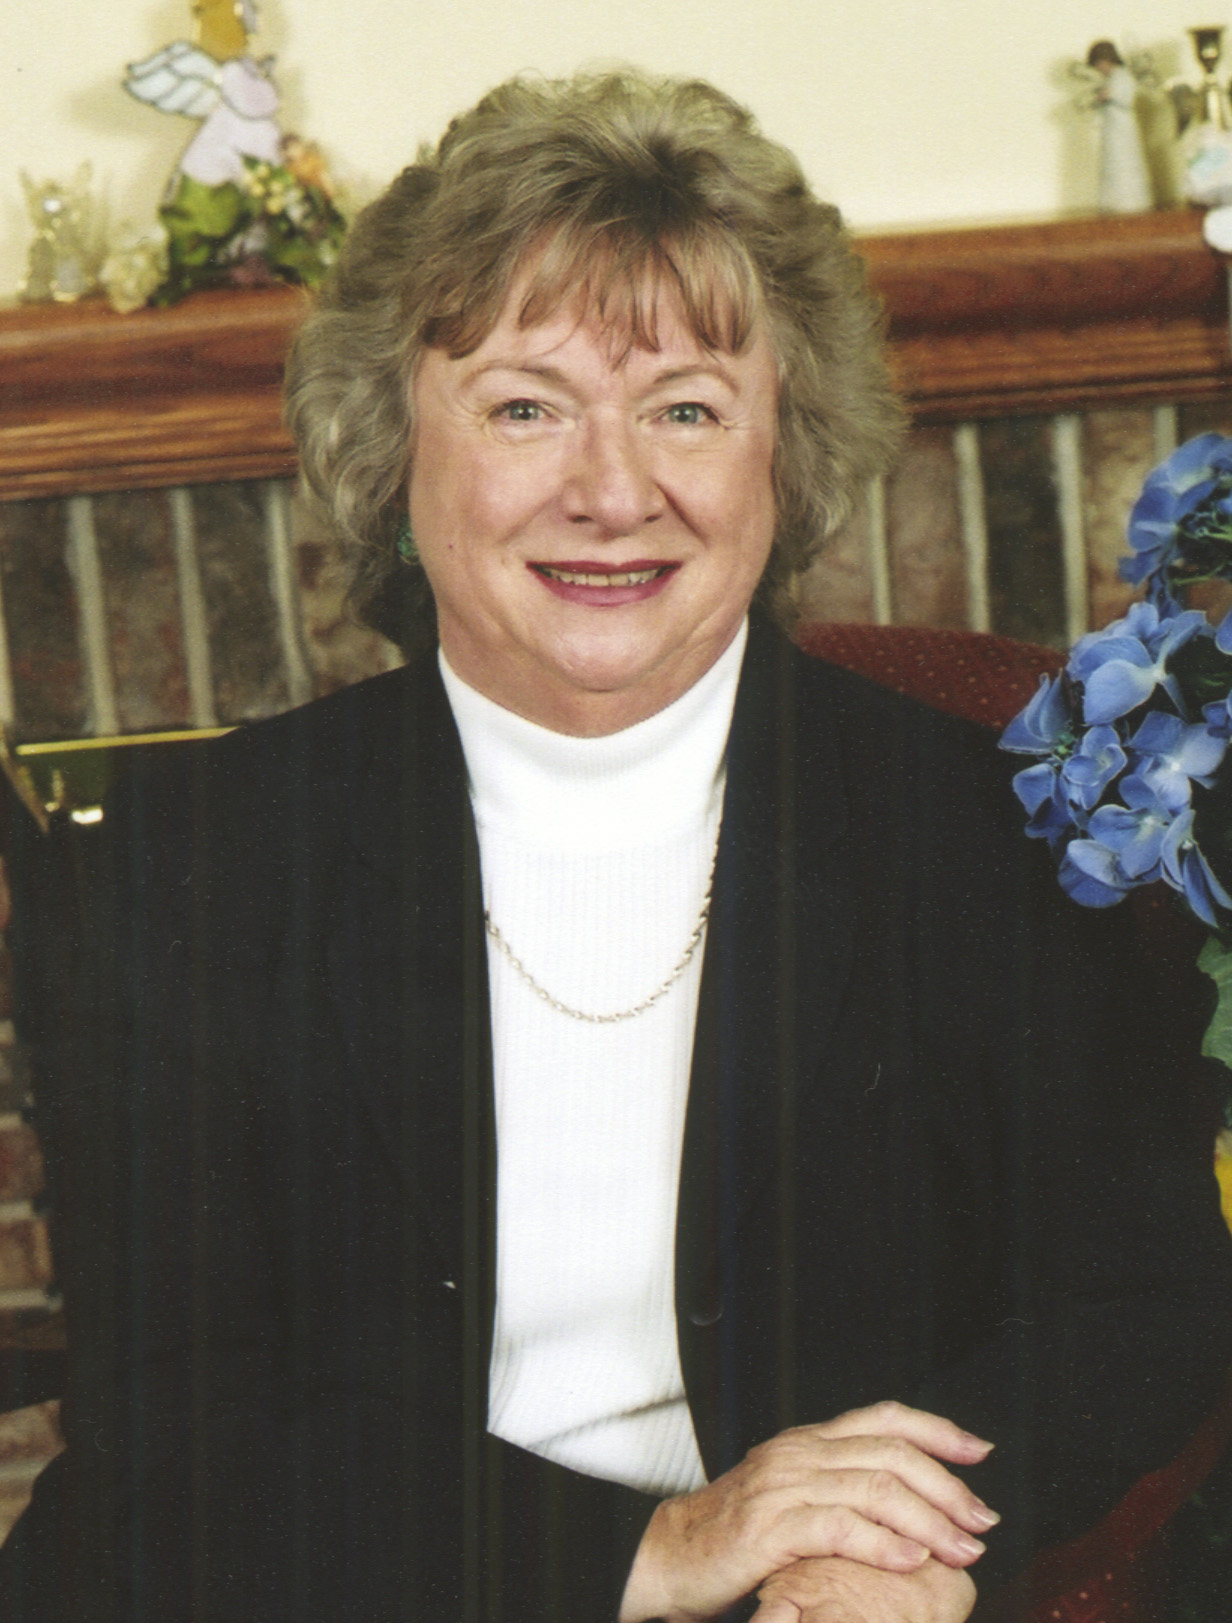 Marian Tompson, founder of AnotherLook and co-founder of LLLI